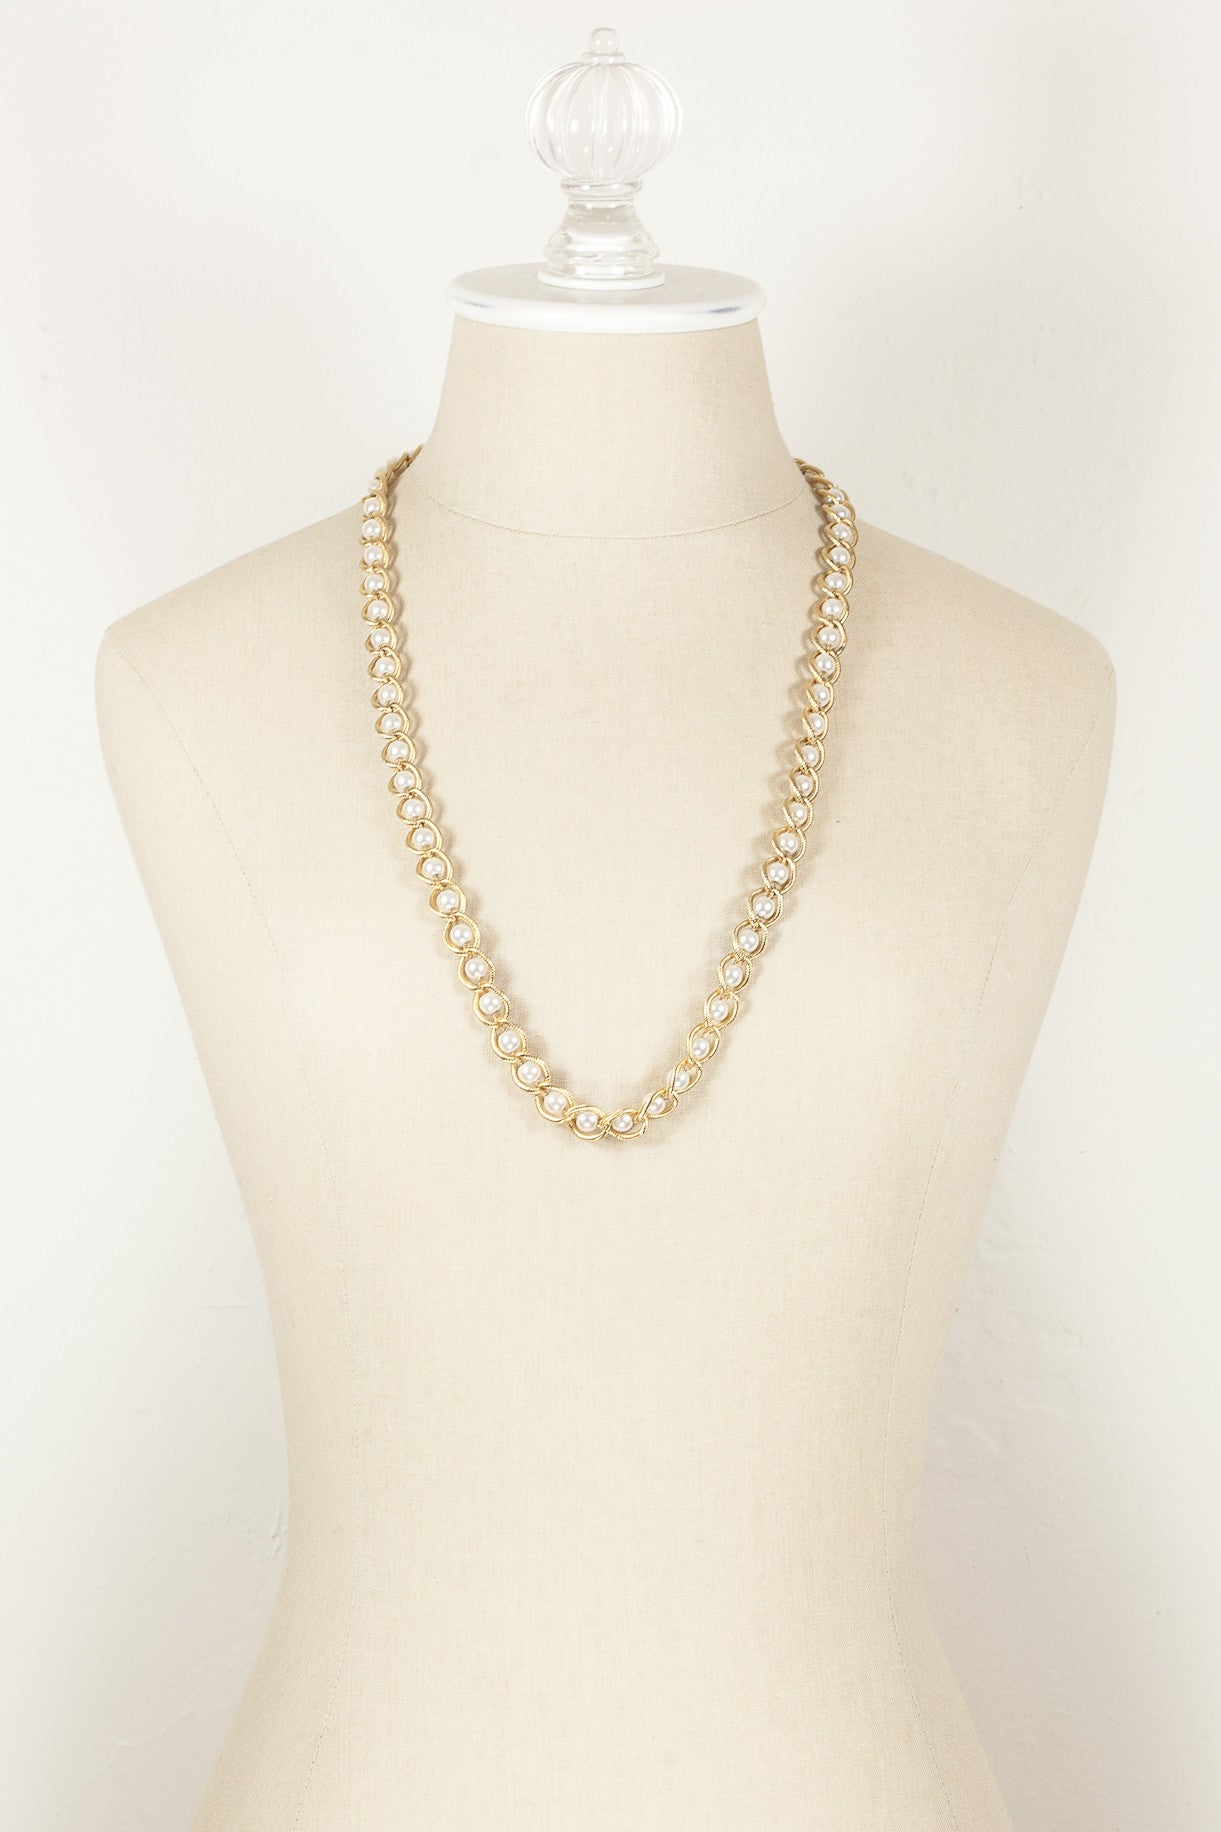 70's__Napier__Gold Chain & Pearl Necklace